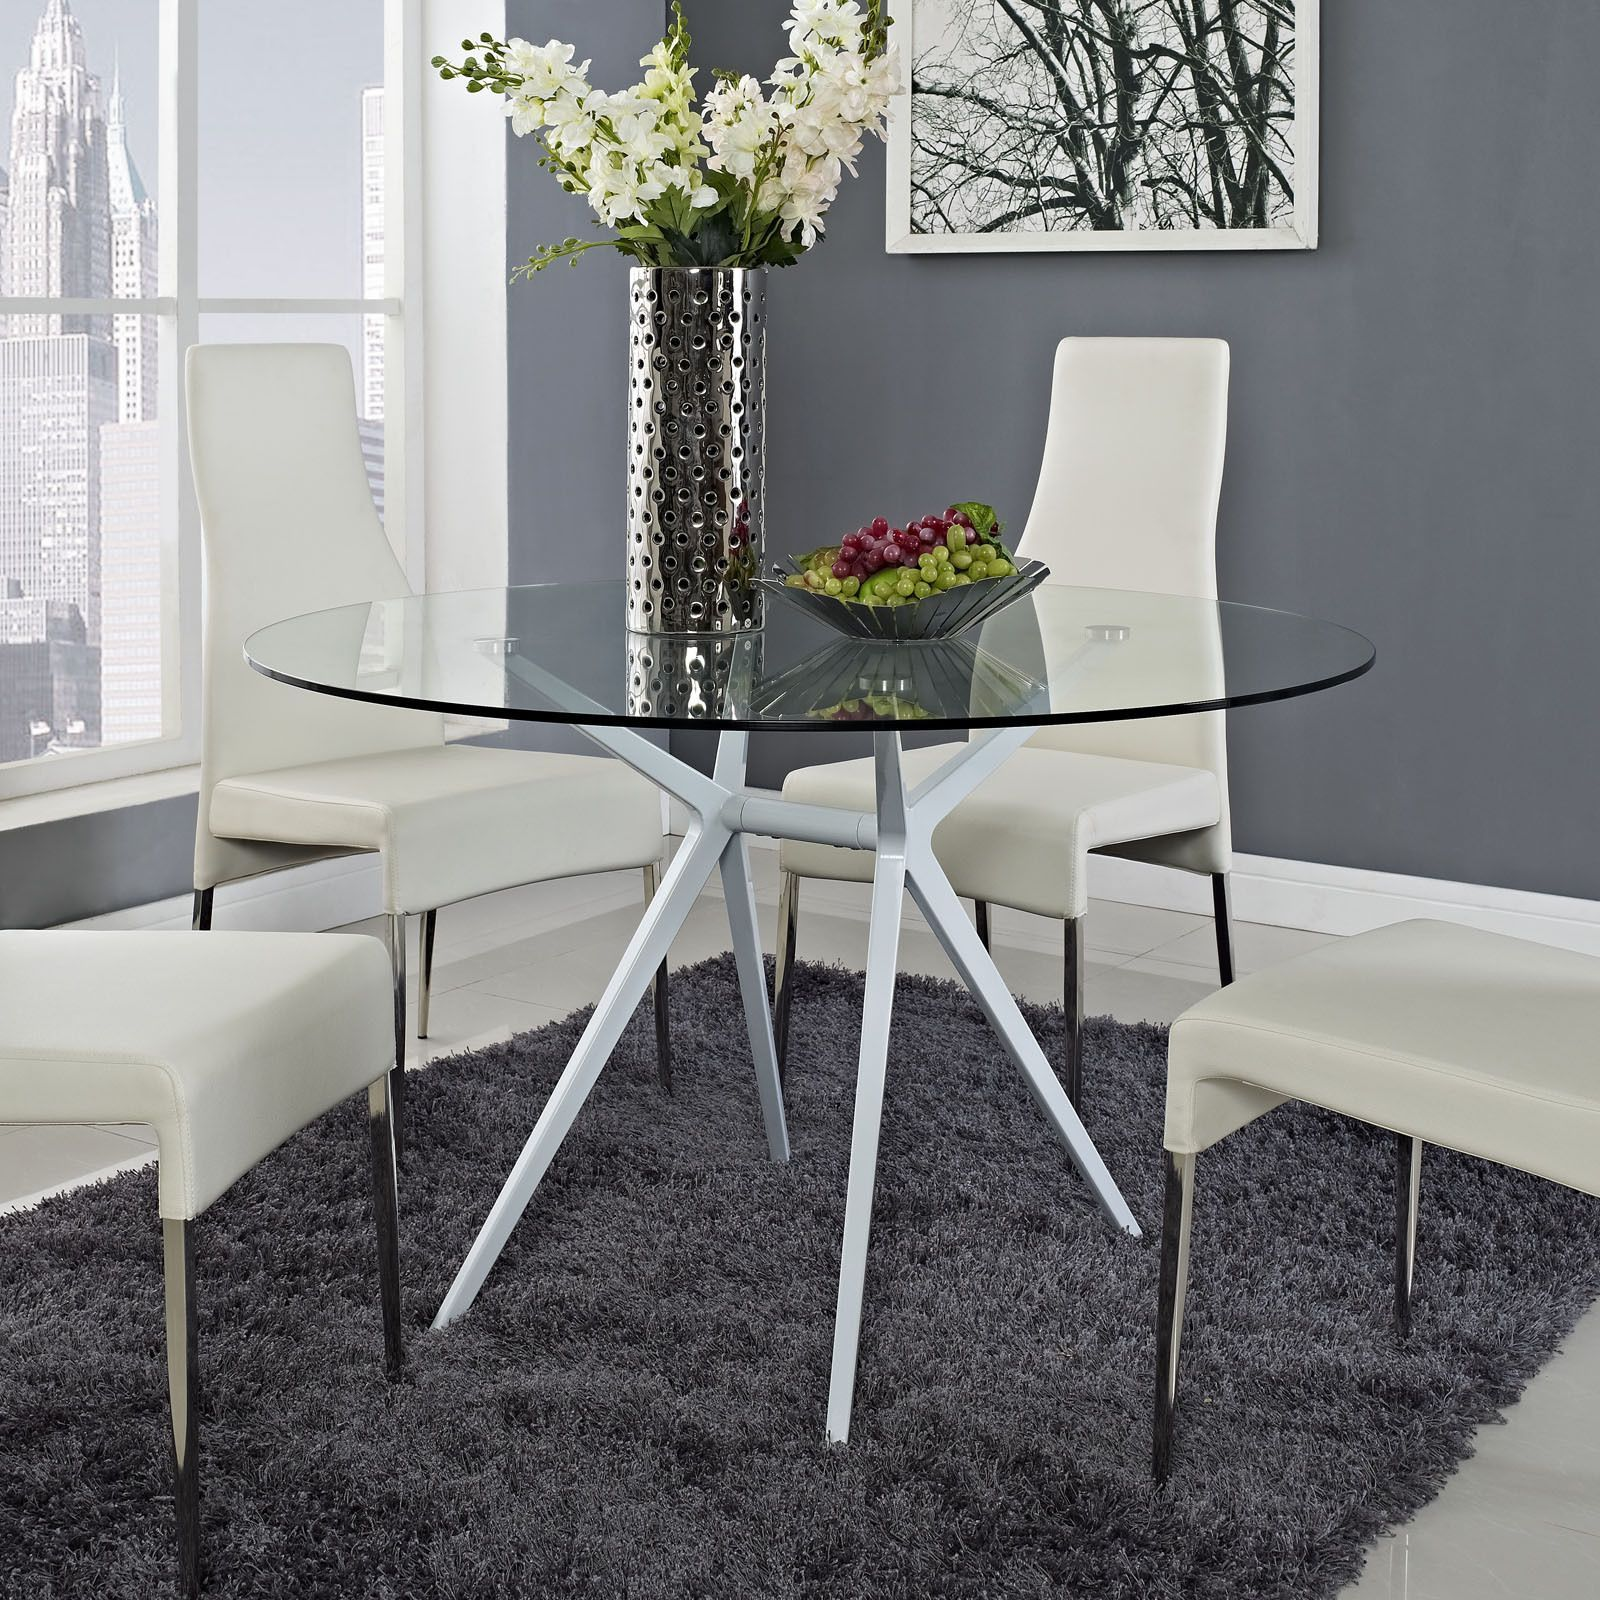 Teak Wood Dining Table White Powder Coated Legs White: Add A Touch Of Modernity To Your Home Decor With This